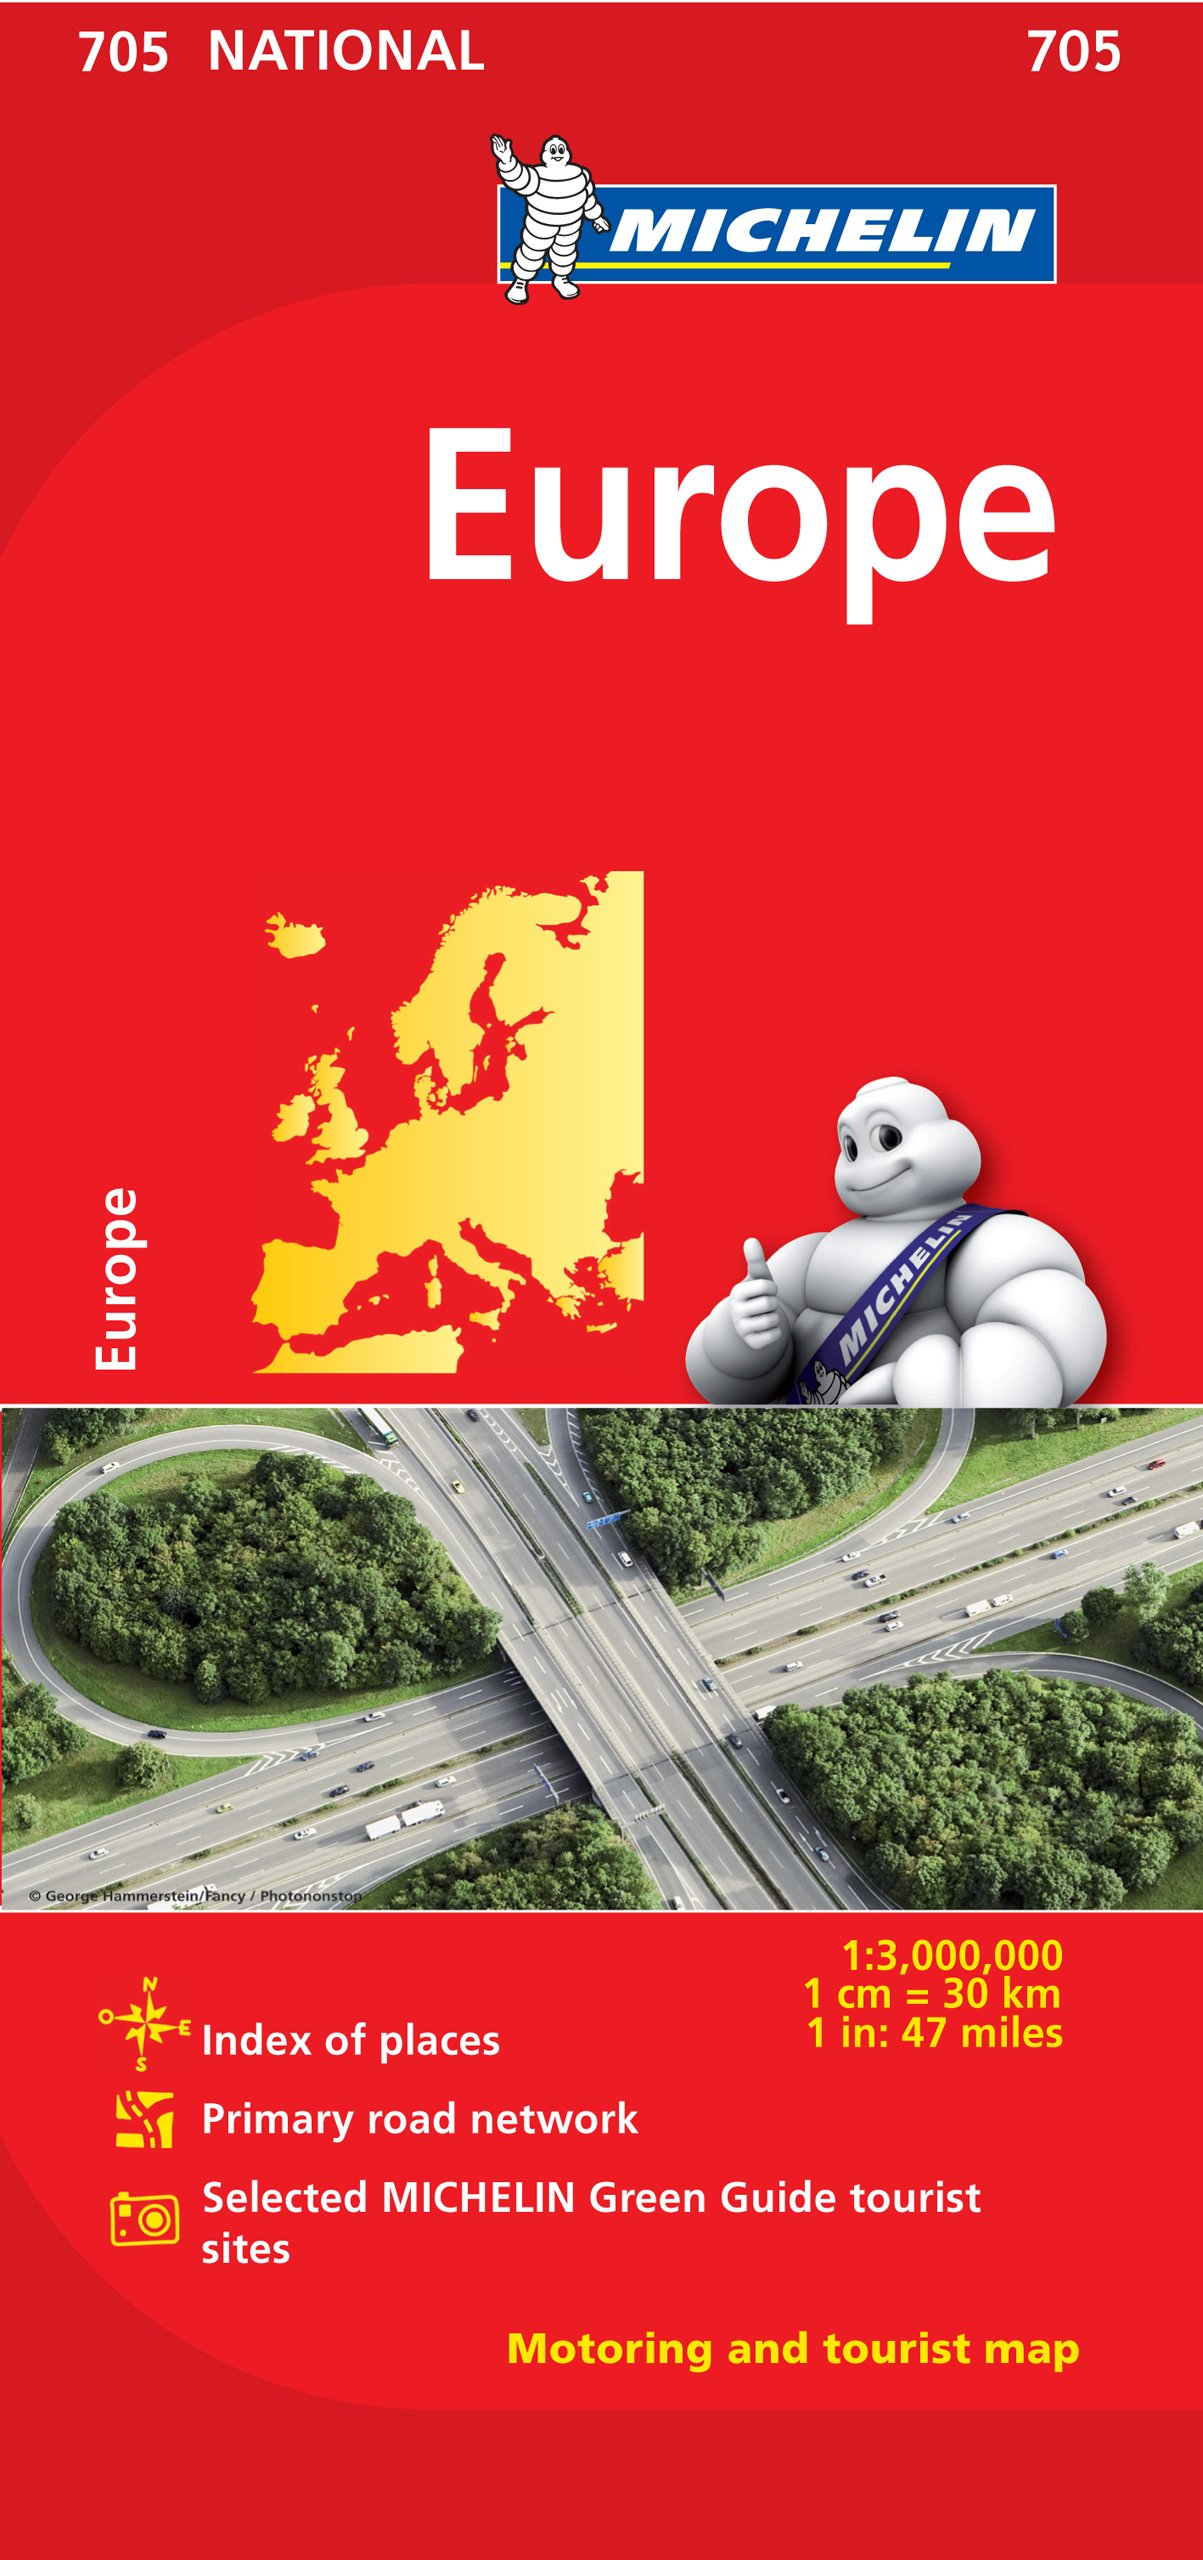 michelin map of france europe Michelin Europe Map 705 (Maps/Country (Michelin)): Michelin